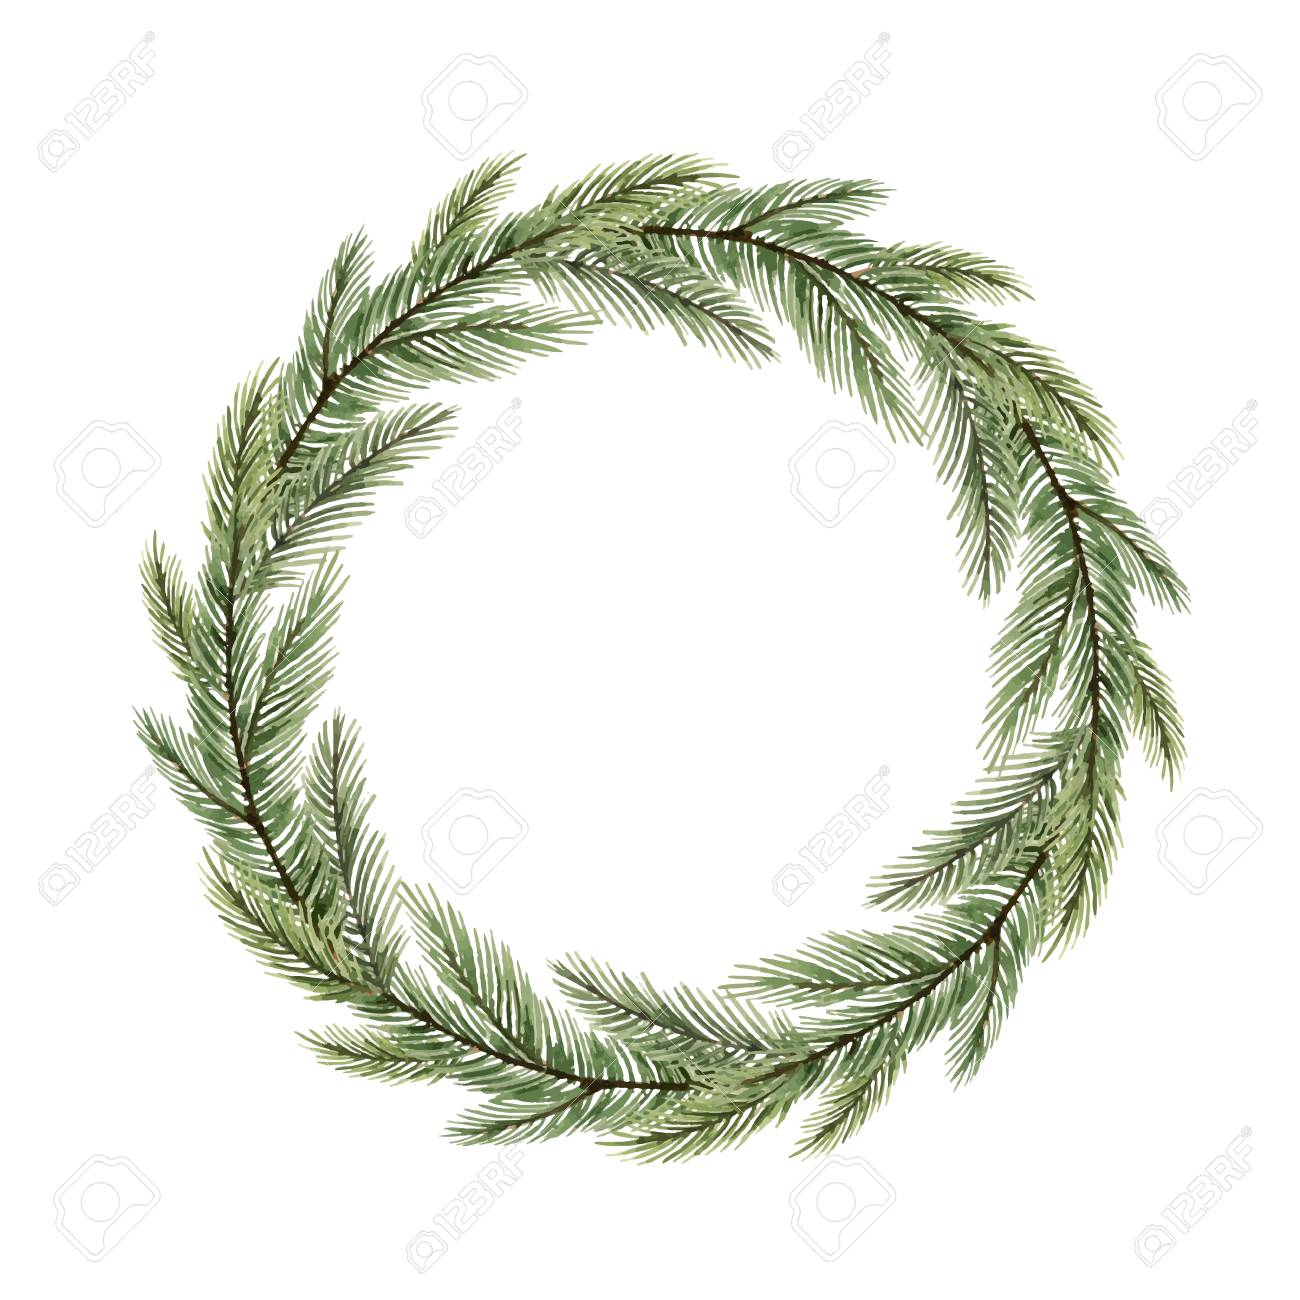 Watercolor vector Christmas wreath with fir branches and place for text. Illustration for greeting cards and invitations isolated on white background. - 126448509